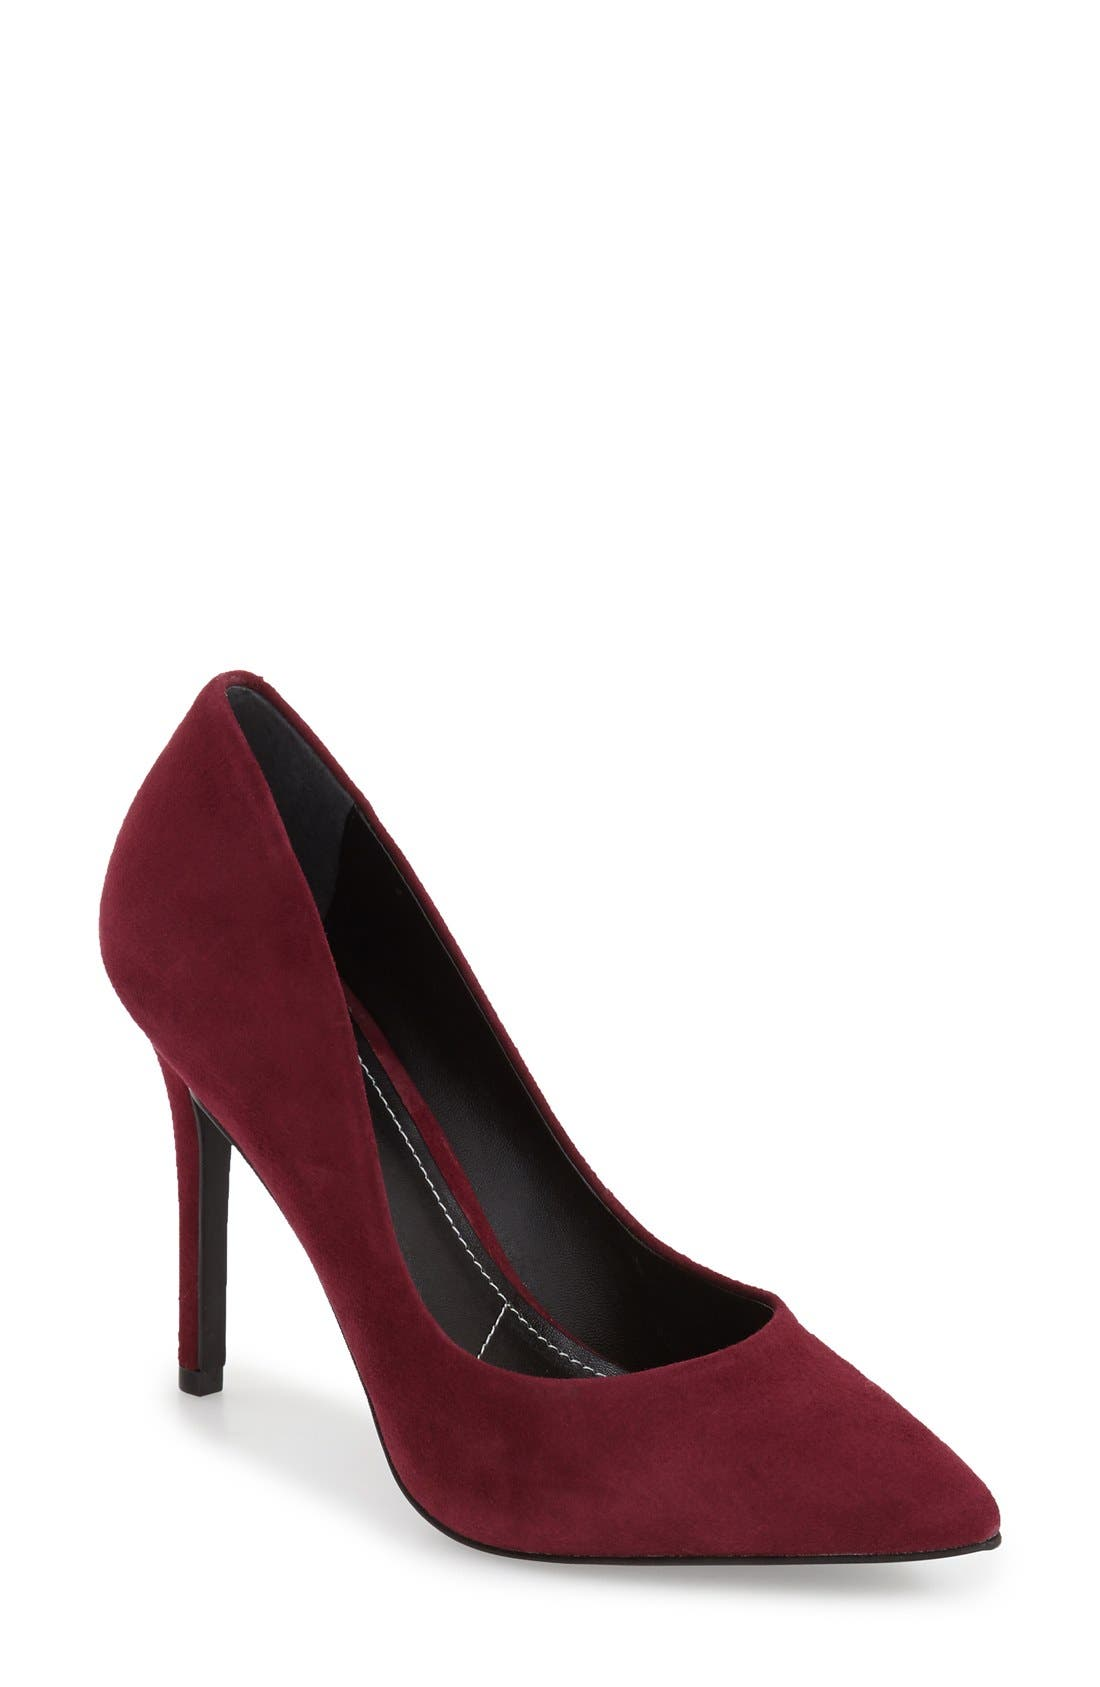 Main Image - Charles by Charles David 'Pact' Pump (Women)